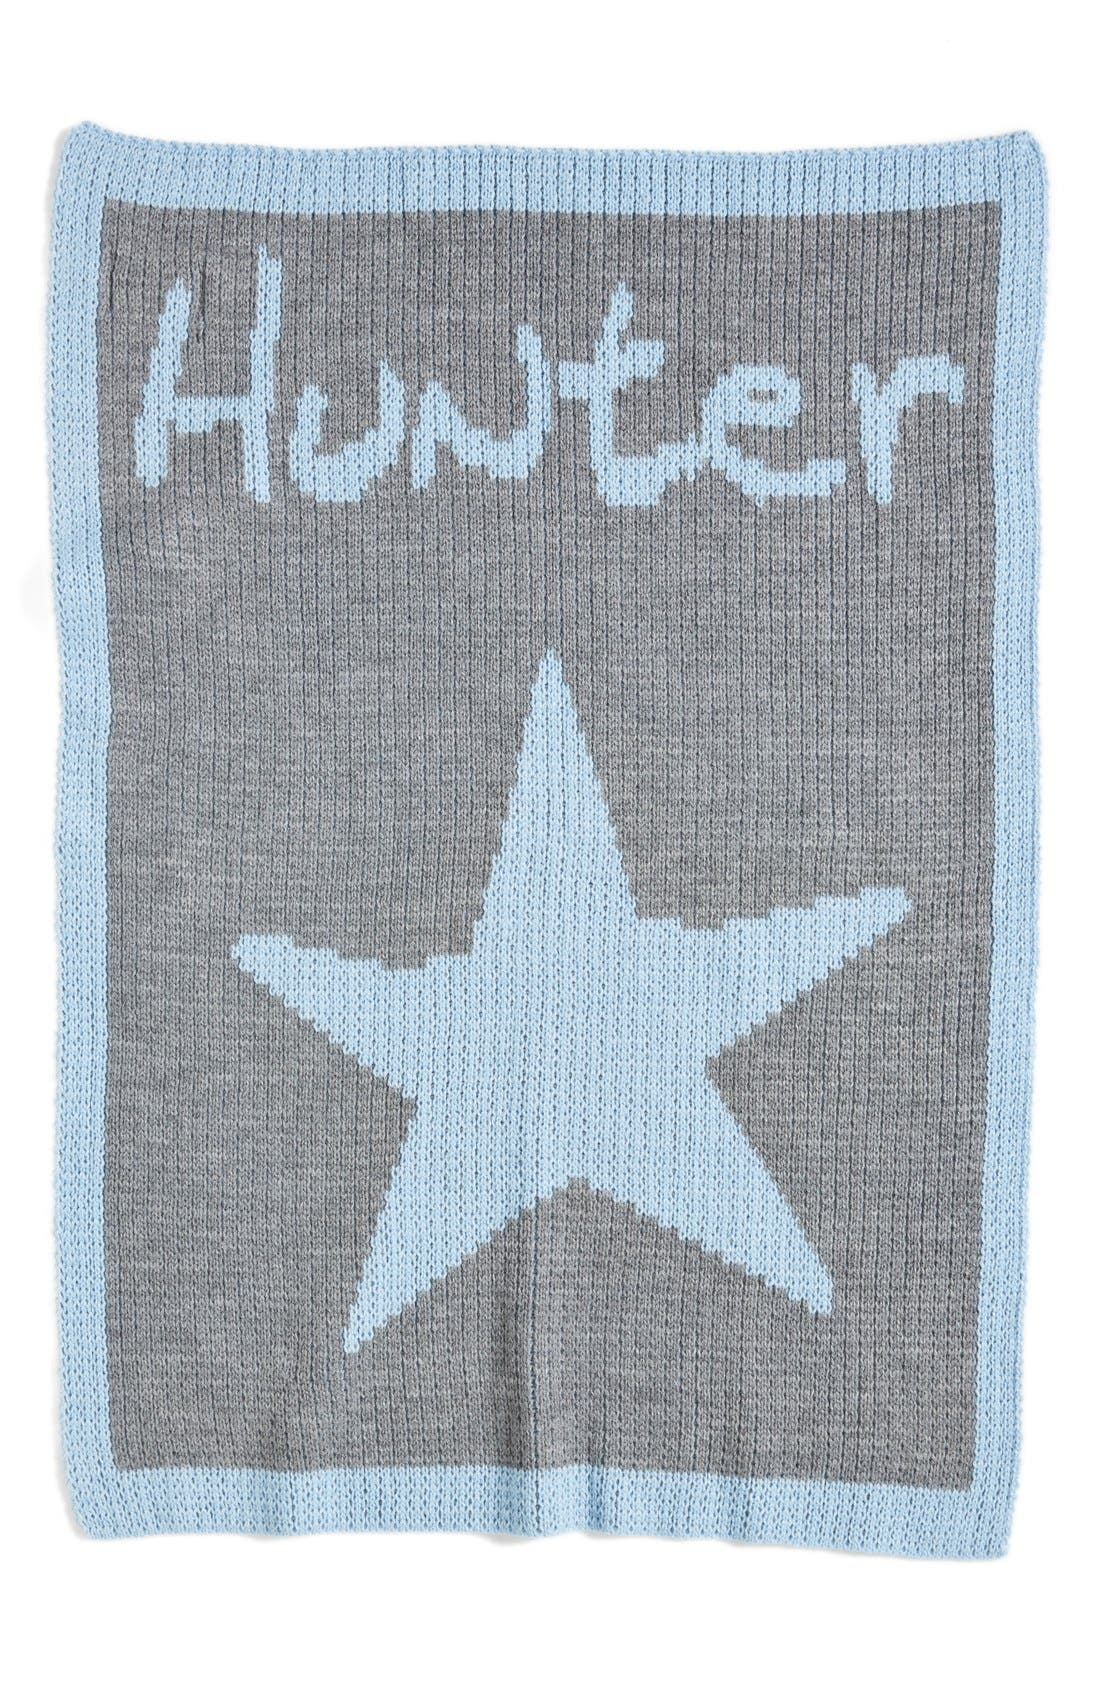 Main Image - Butterscotch Blankees 'Star' Personalized Crib Blanket